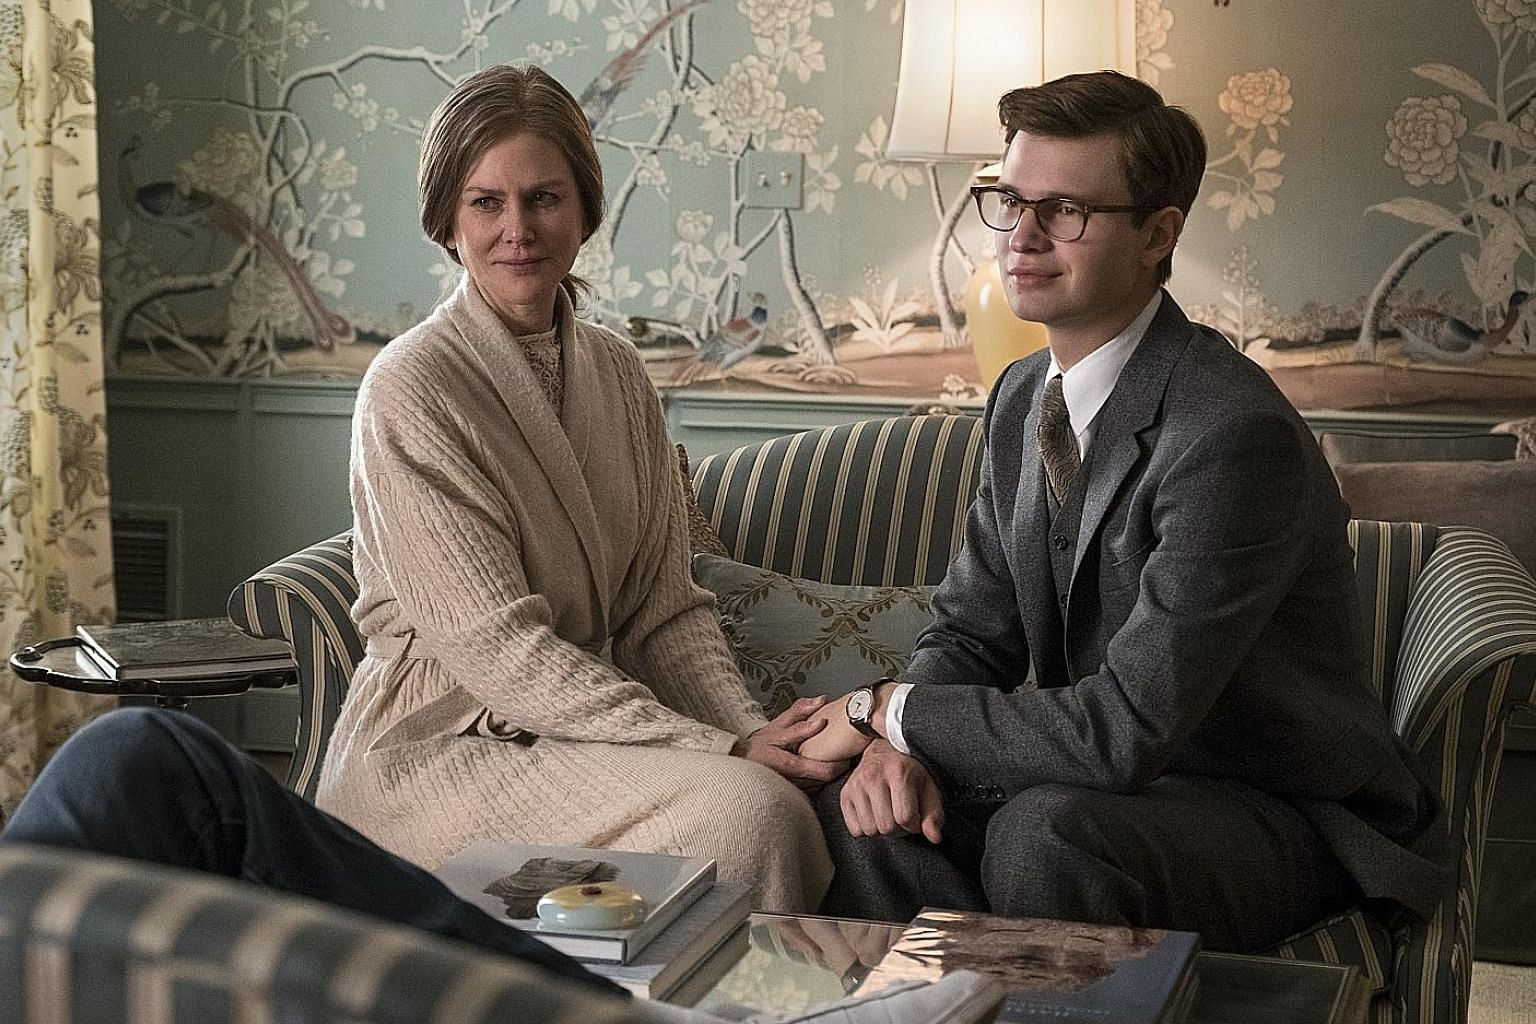 Nicole Kidman plays Samantha Barbour and Ansel Elgort (both left) plays Theo Decker in The Goldfinch.